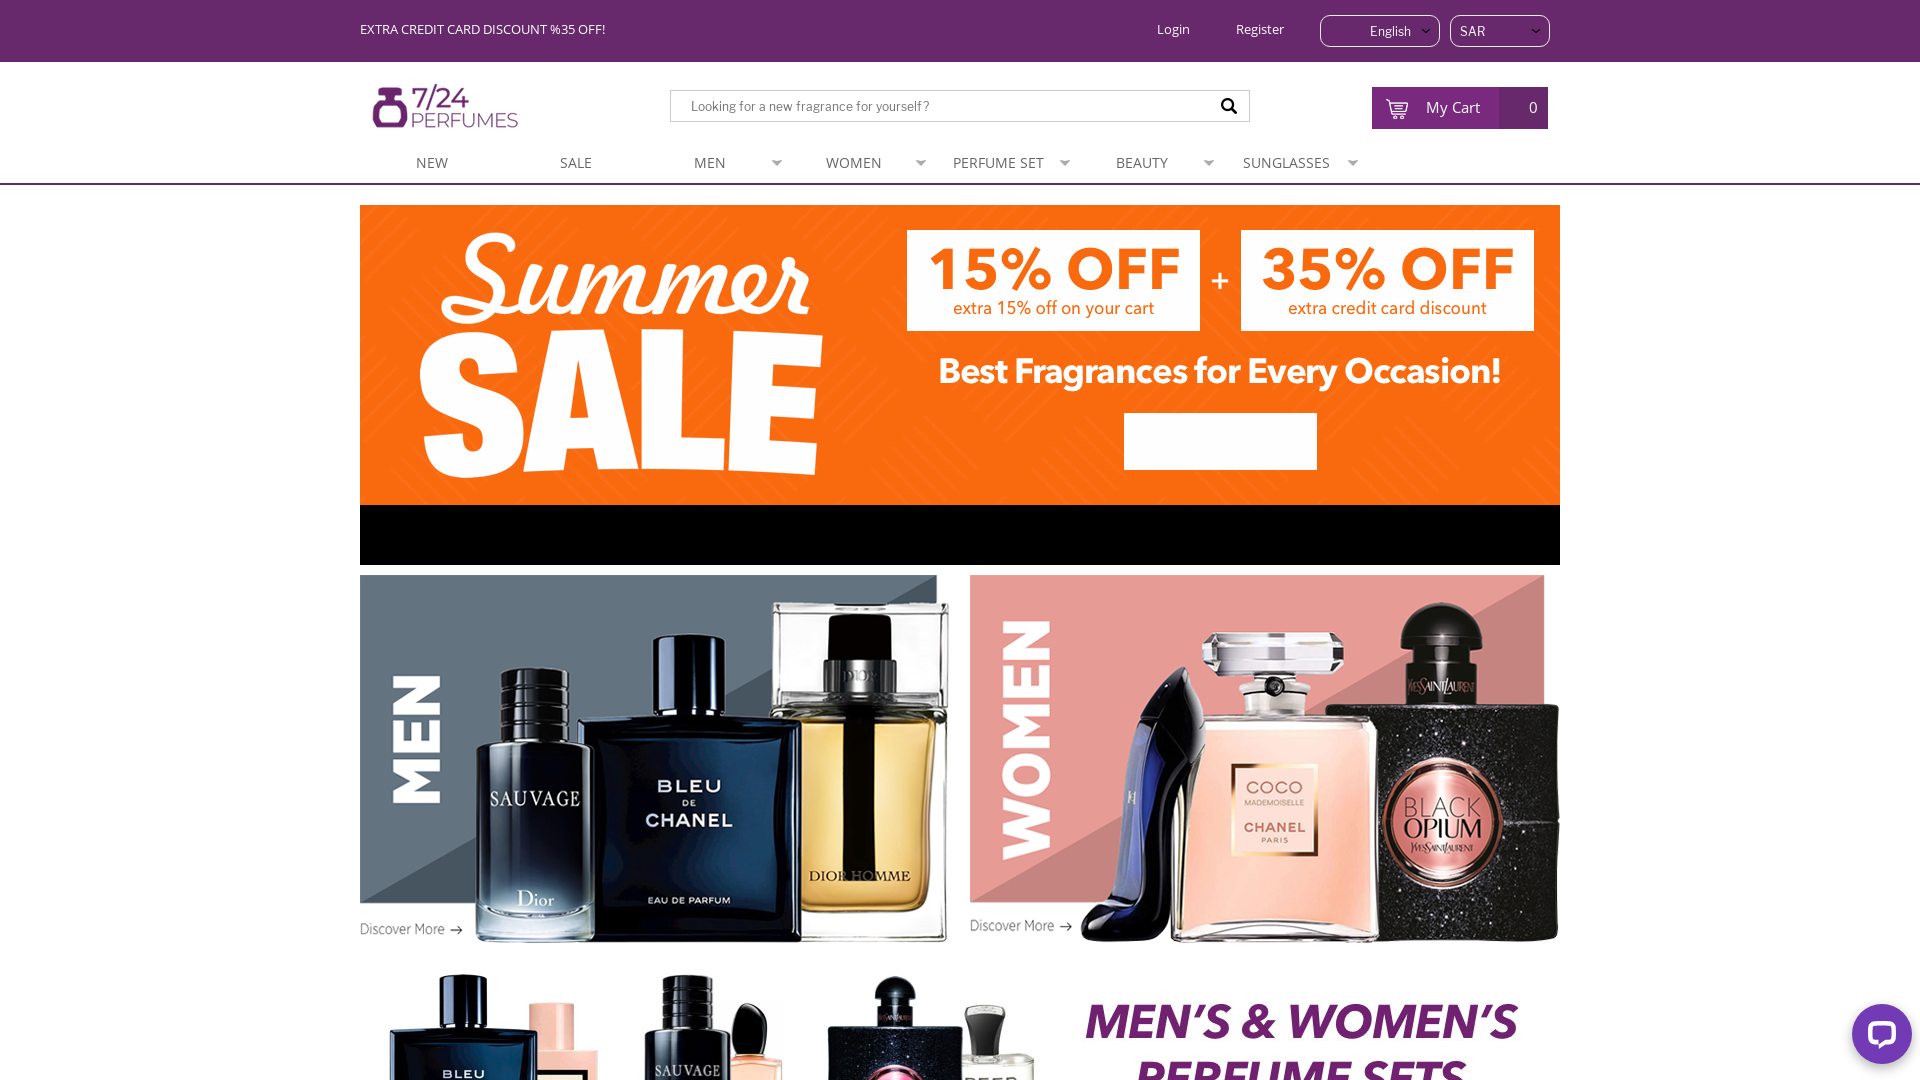 7/24 perfumes Many GEOs website